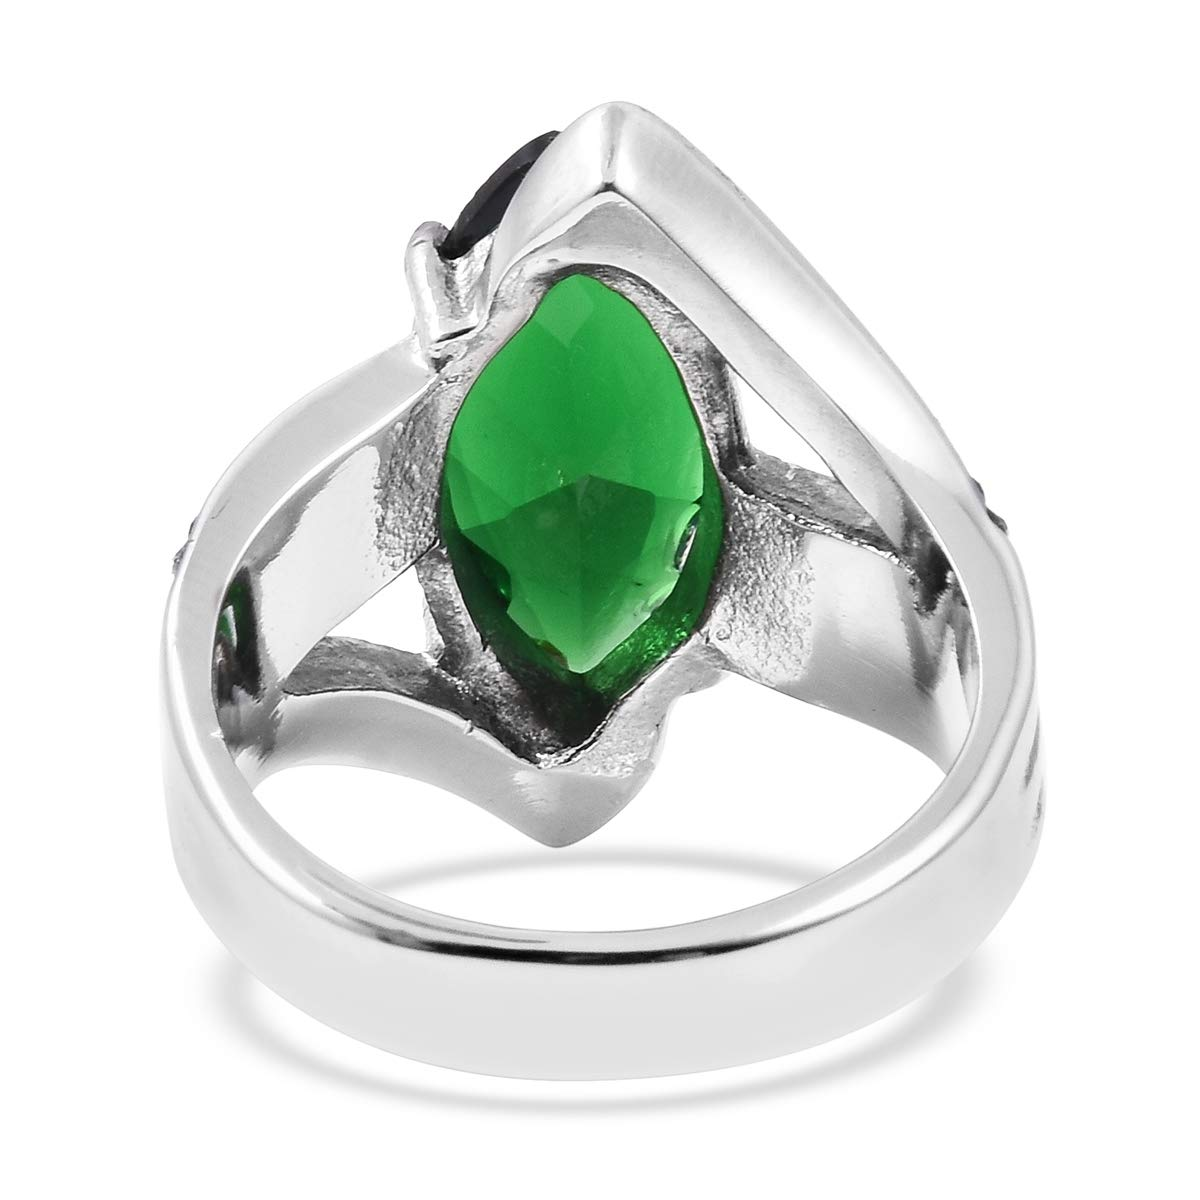 Shop LC Delivering Joy Statement Ring Stainless Steel Marquee Green Cubic Zirconia CZ Gift Jewelry for Women Size 10 Ct 7.8